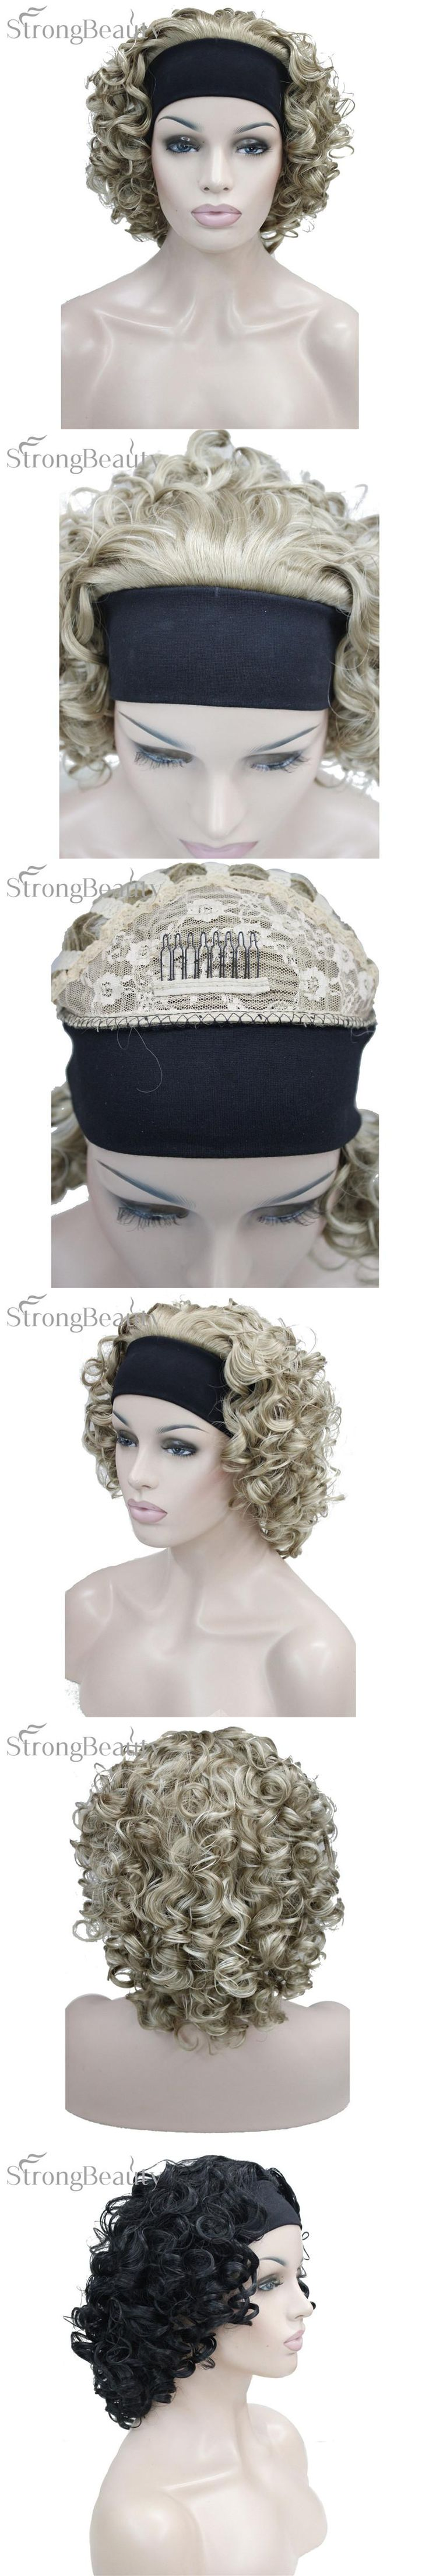 Strong Beauty Synthetic Hair Fake Short Kinky Curly Blonde Black Wig With Headband Wigs Natural For Black Women